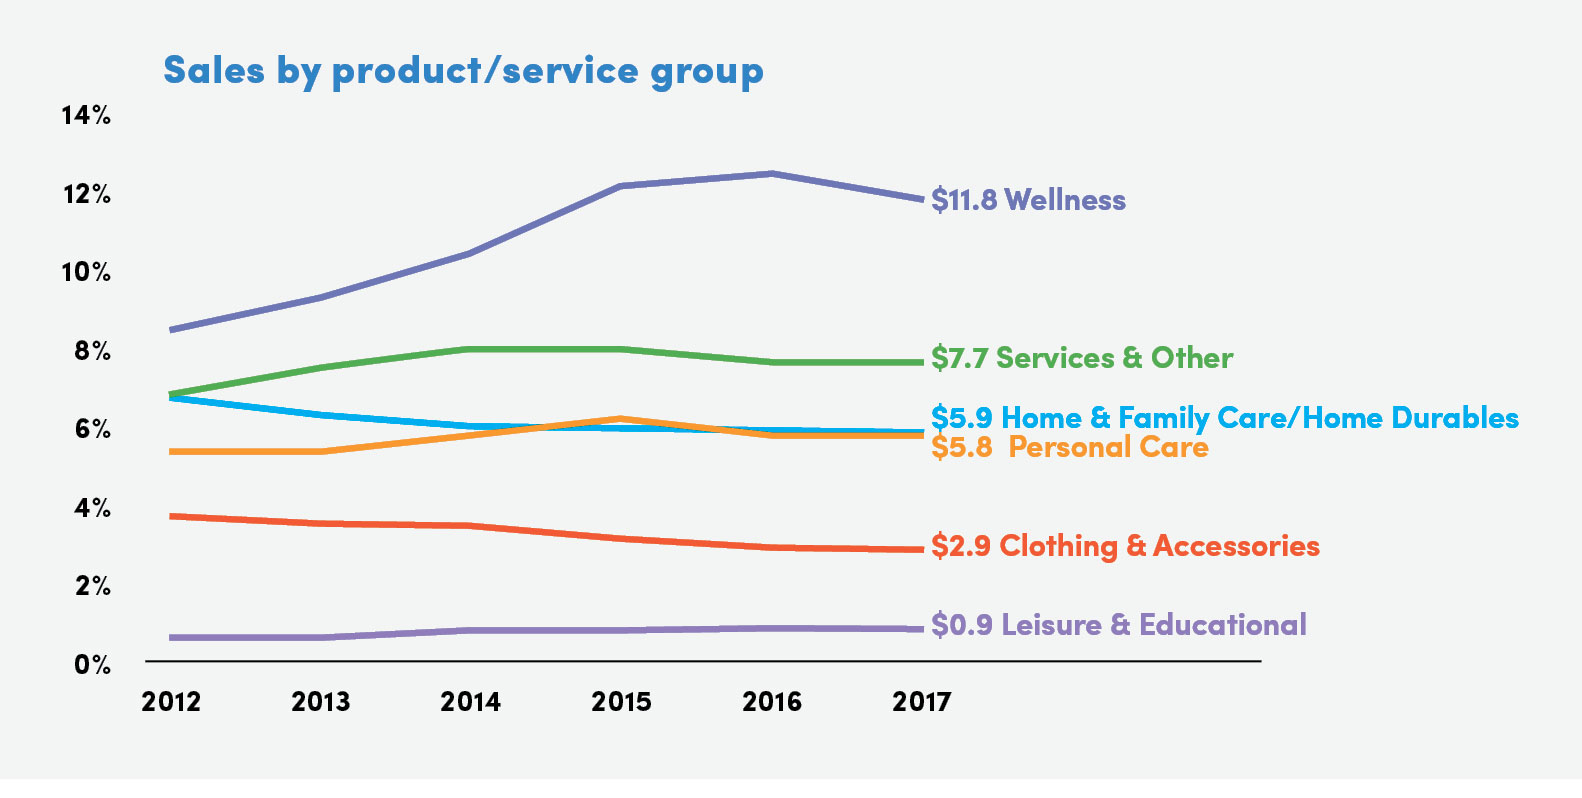 Sales by product/service group